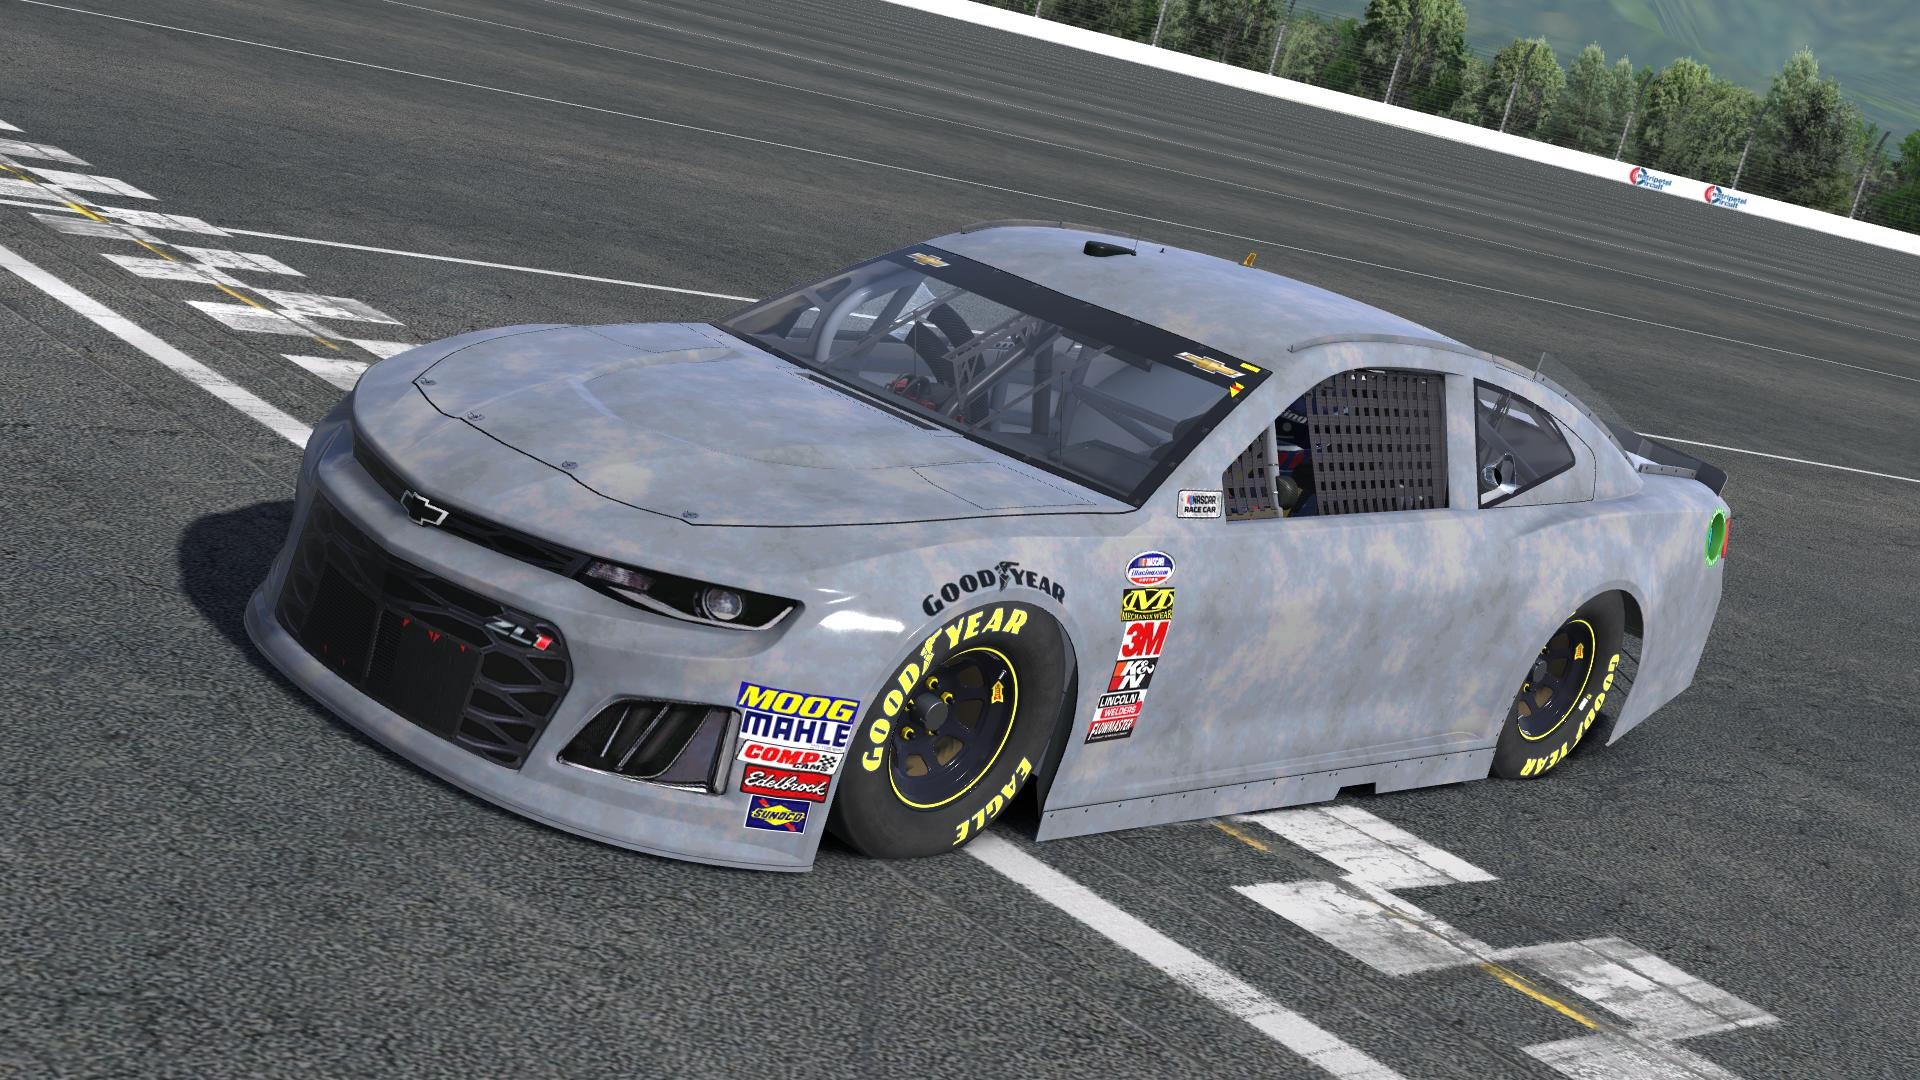 Preview of Test Car by Cory H Harts